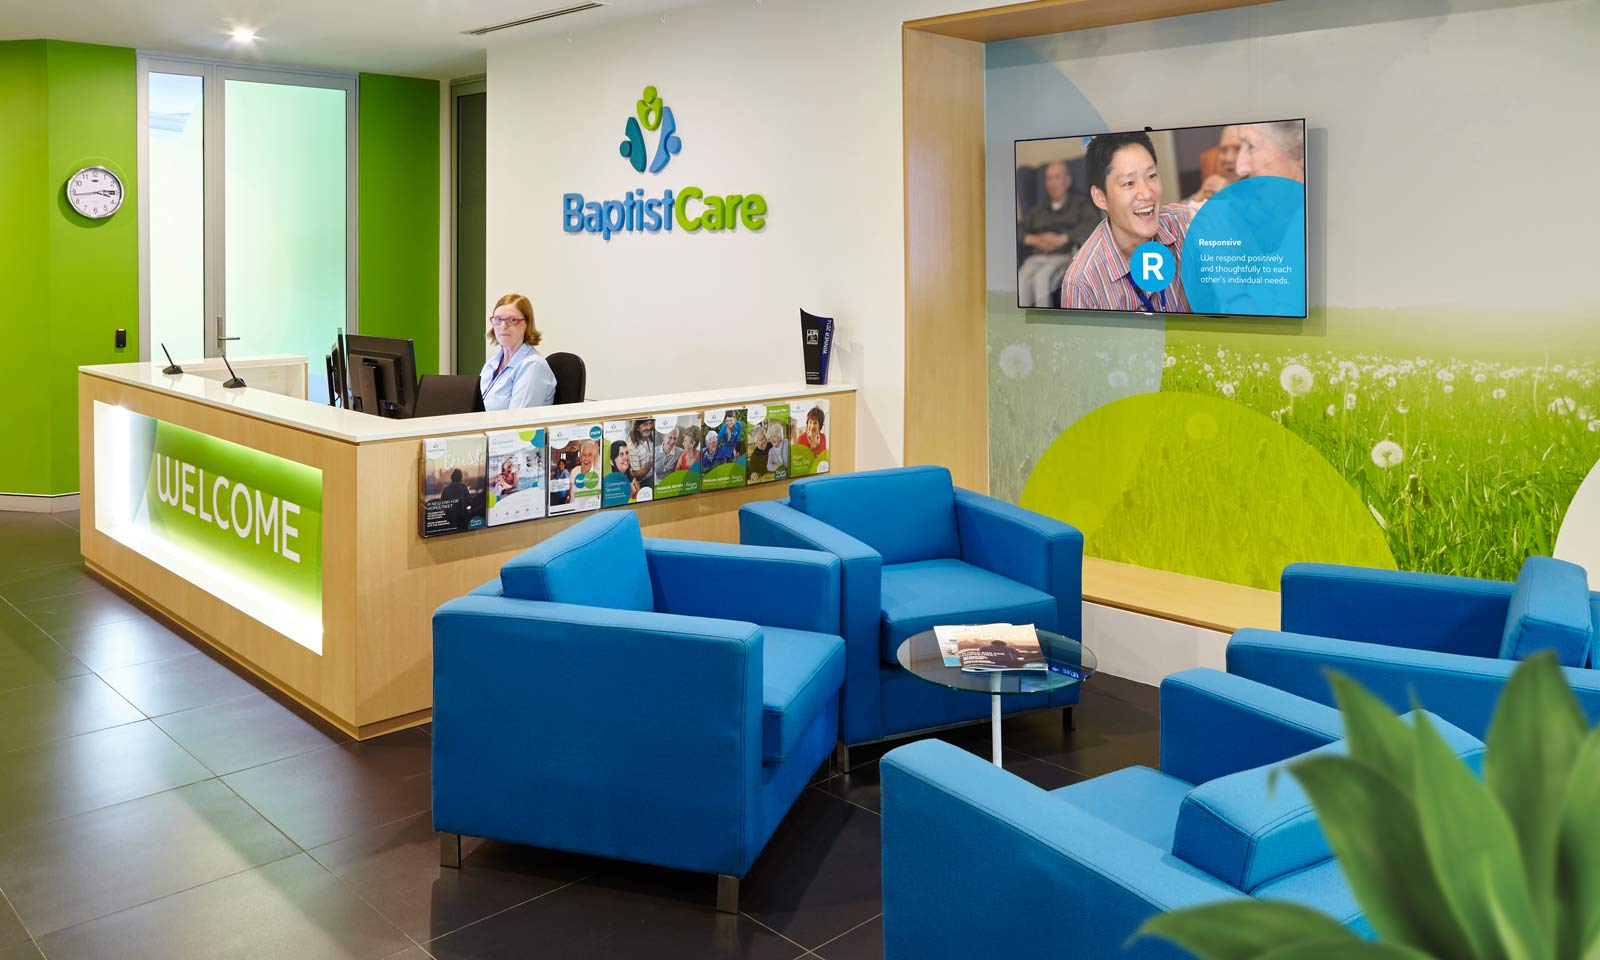 Sydney branding company interiors, BaptistCare staff reception area.